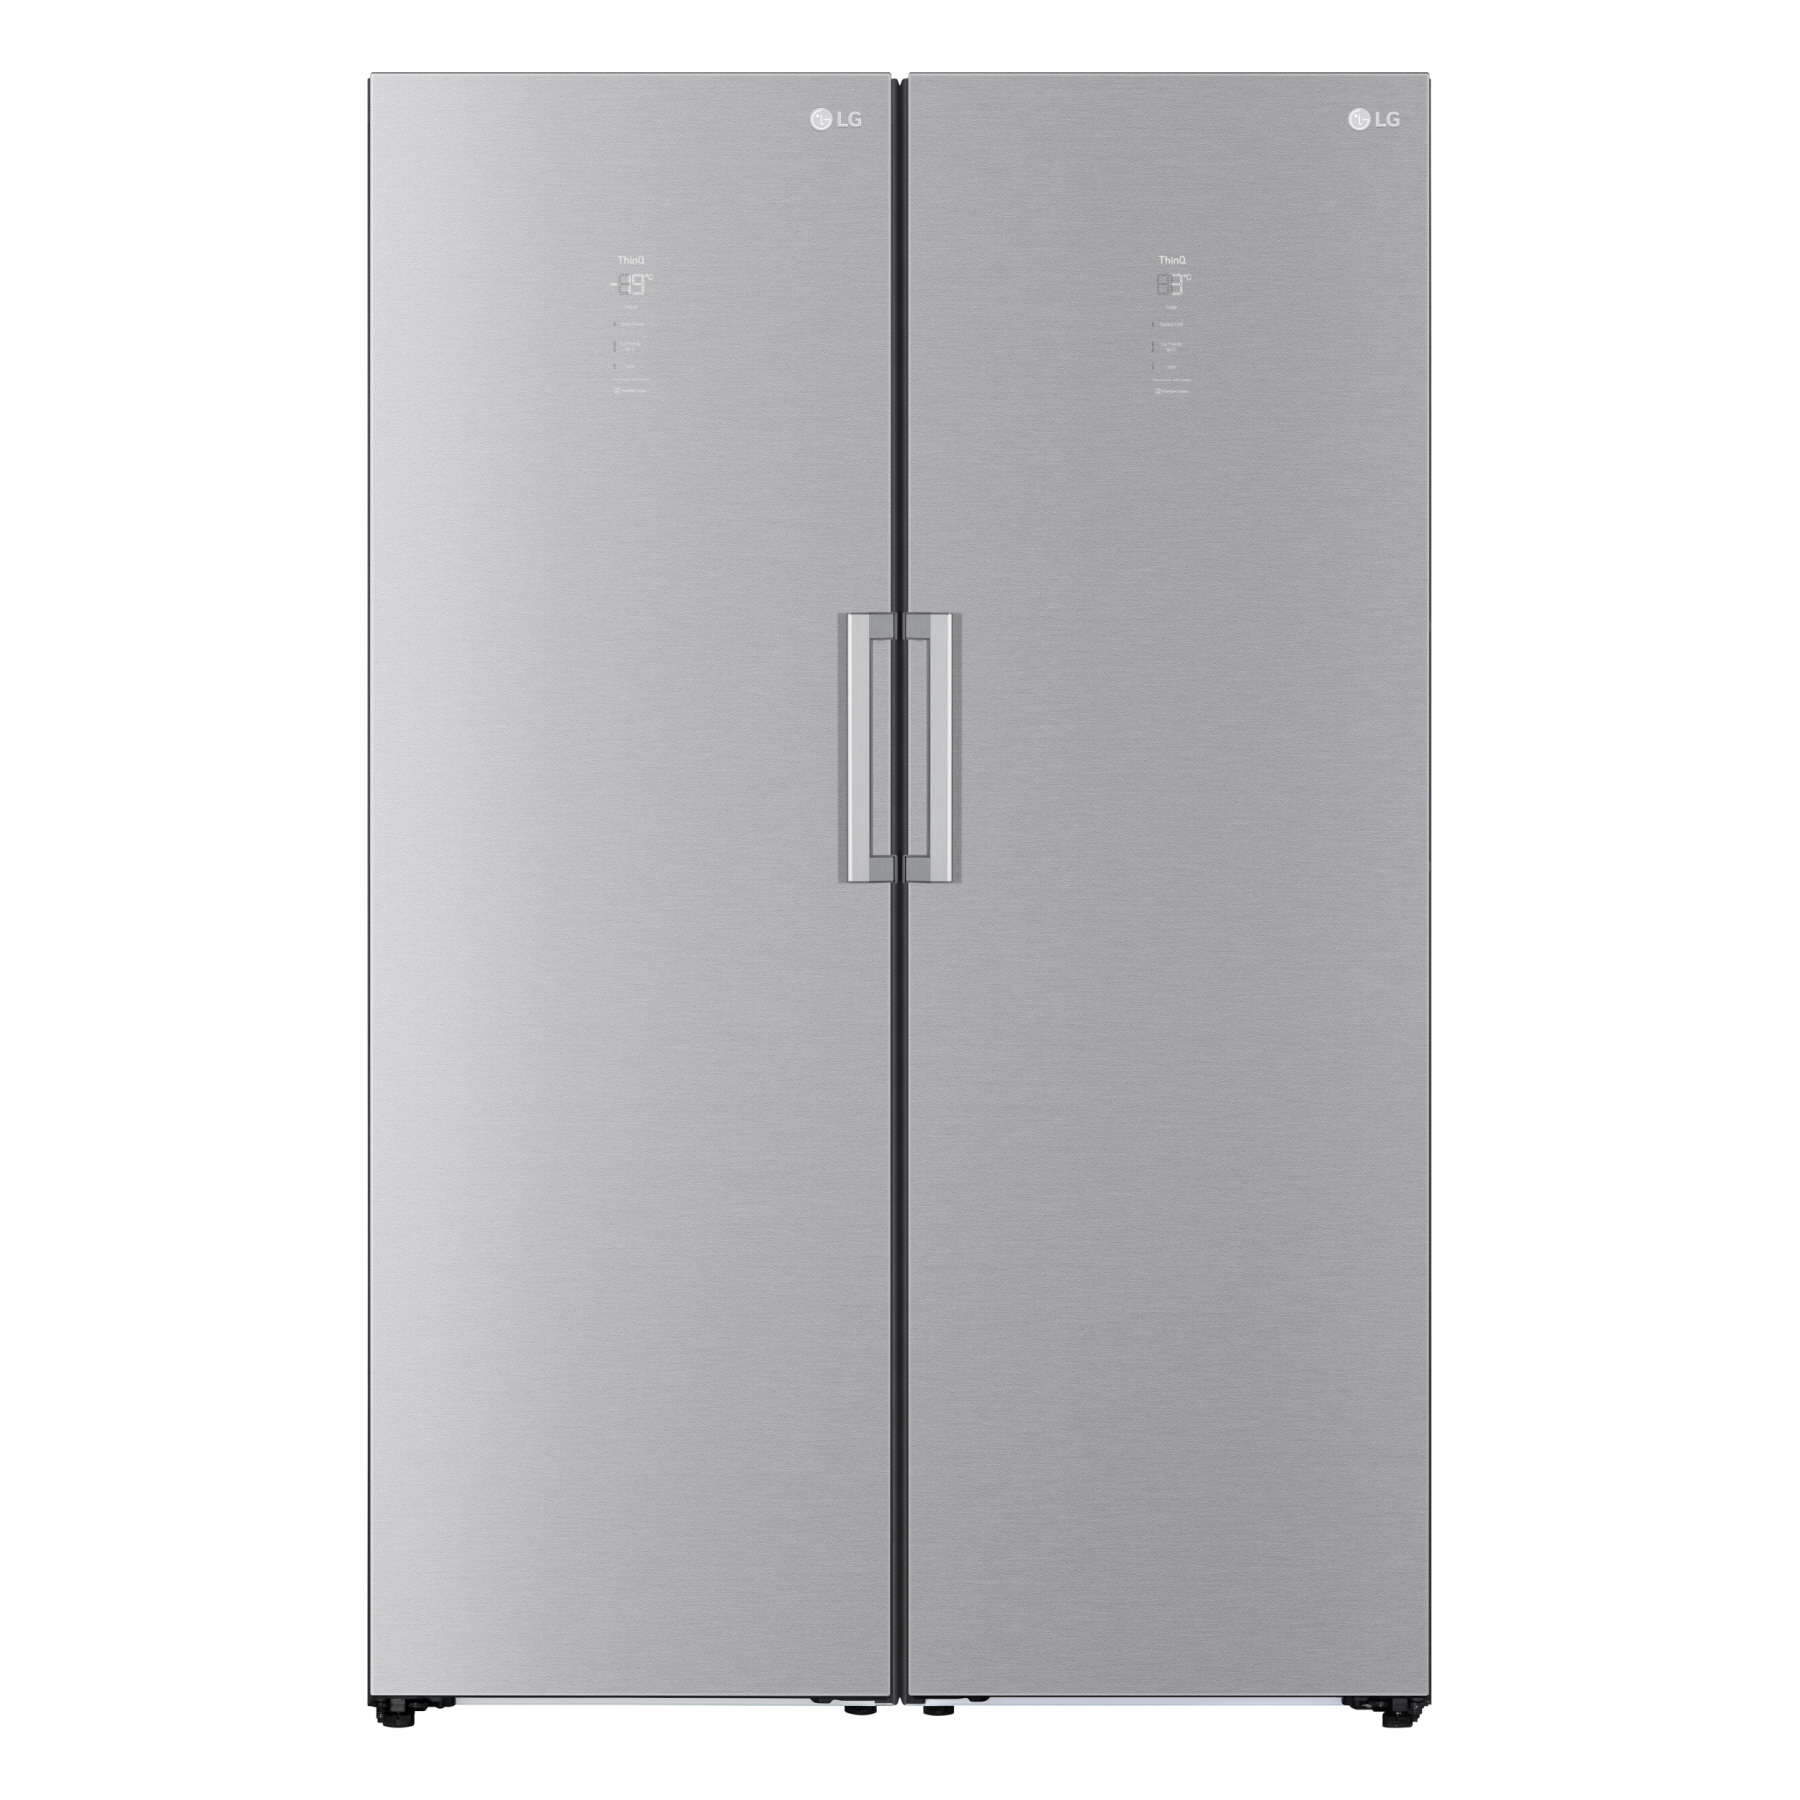 Front view of the updated LG Fridge and Freezer pair